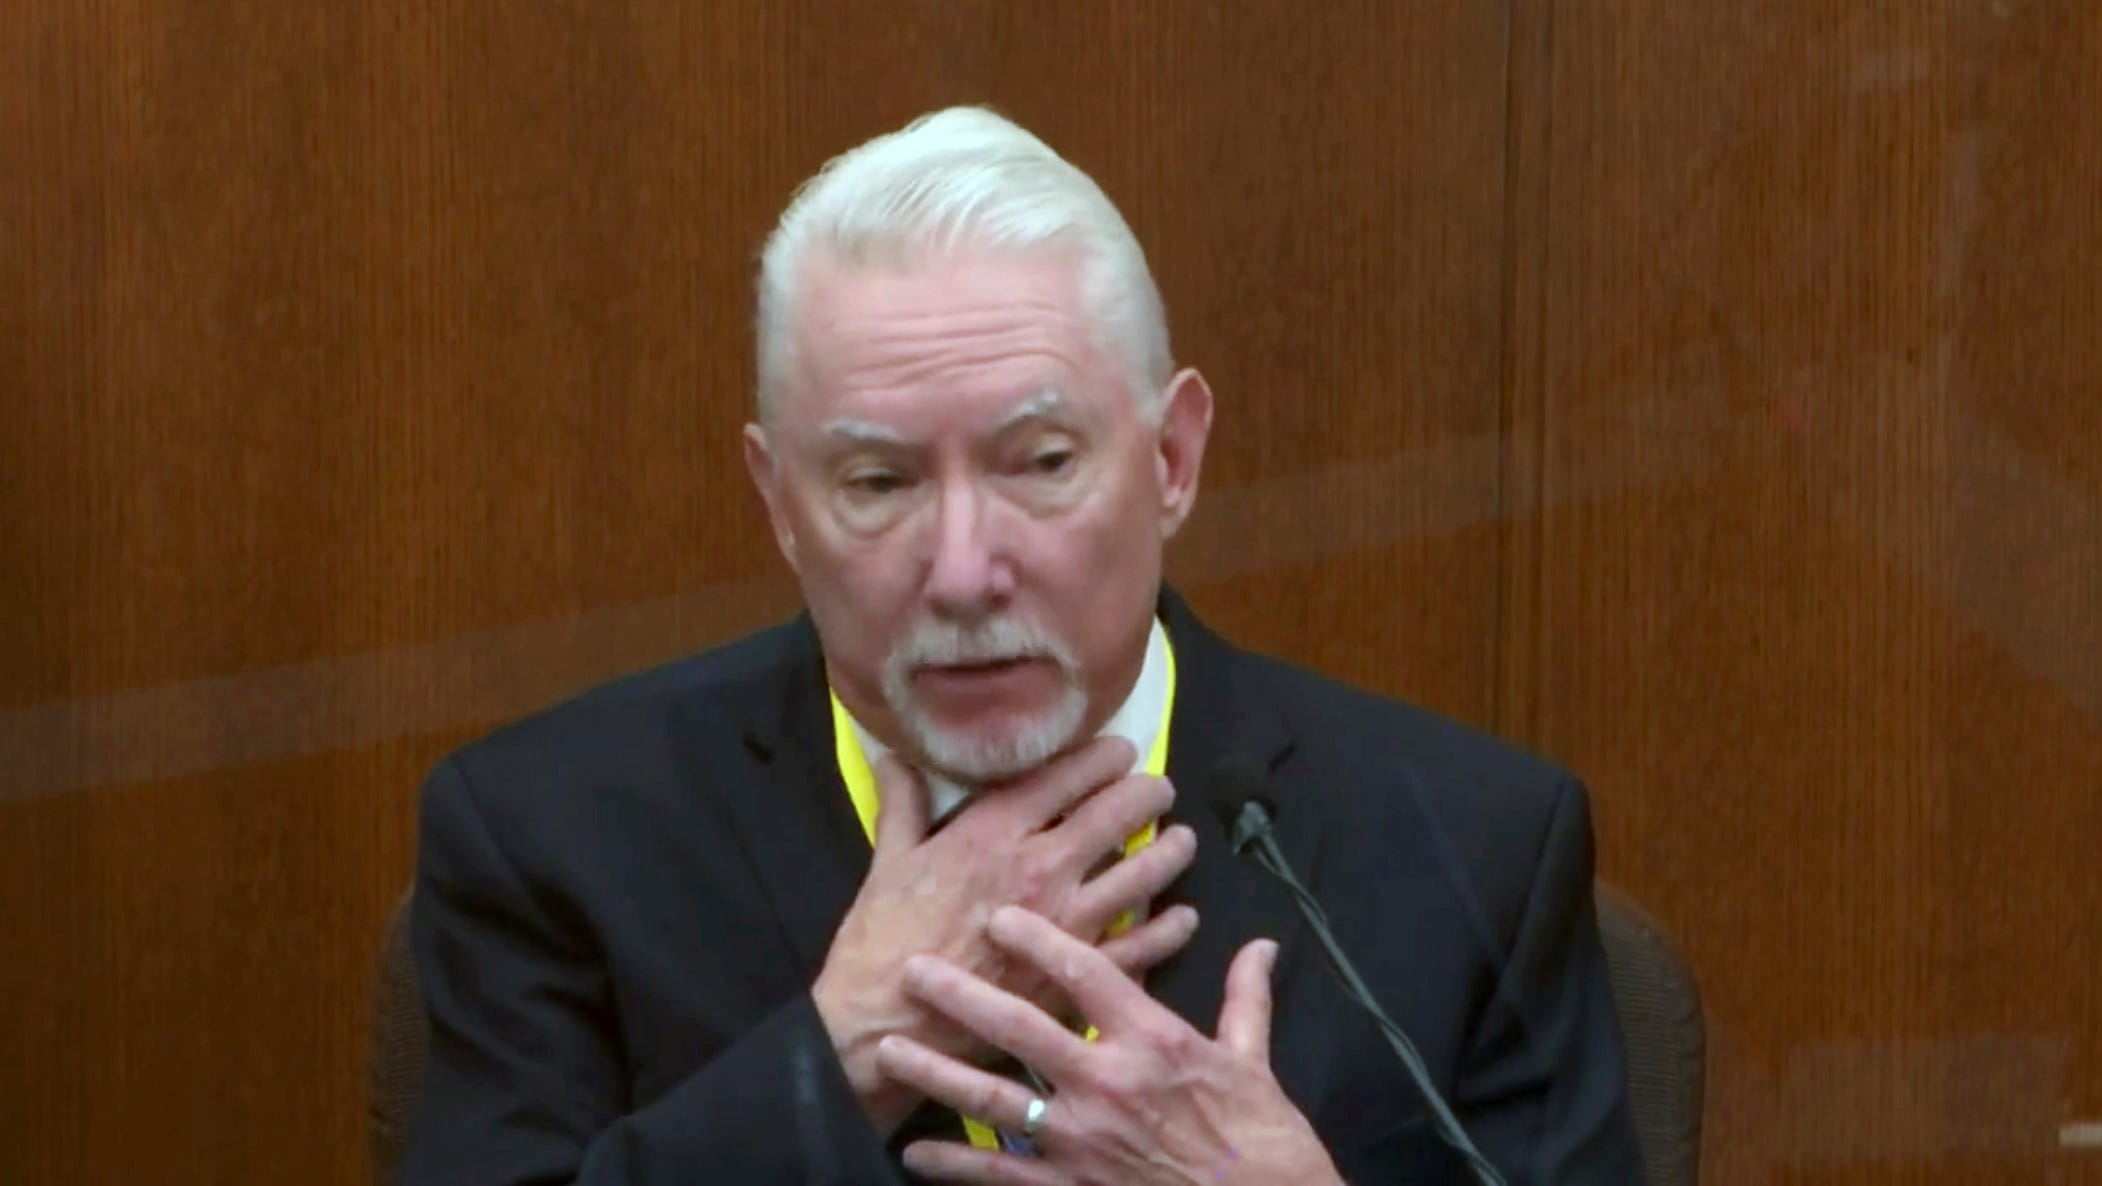 Expert says cop was justified in pinning down George Floyd 1